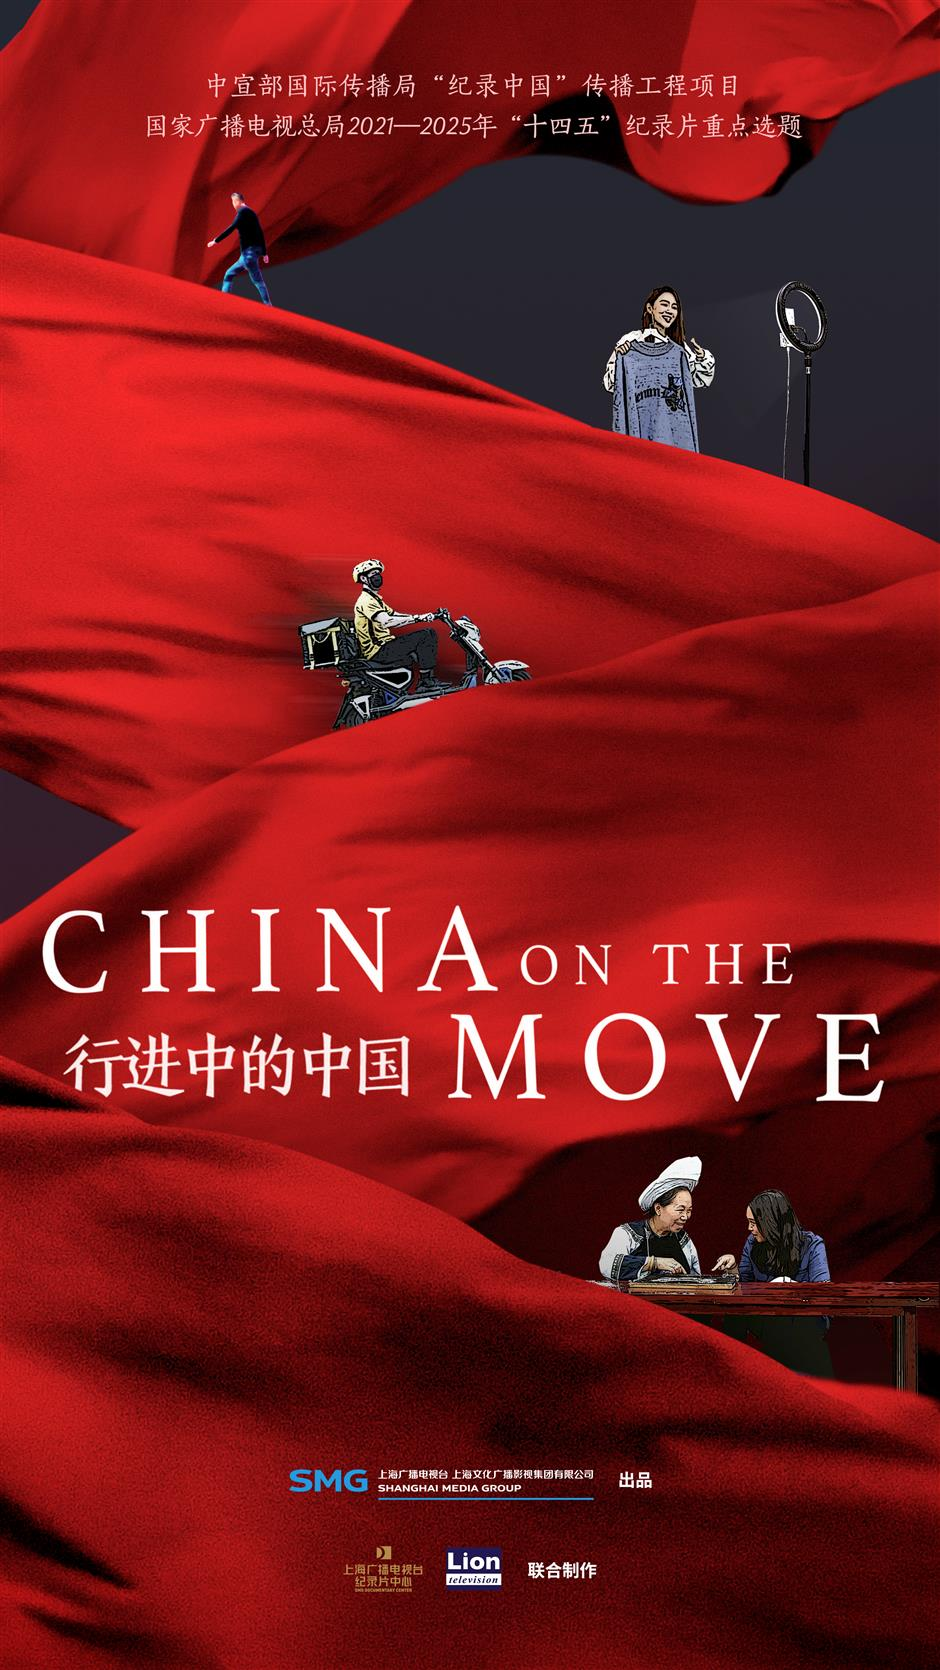 China On the Move to air on TV channels